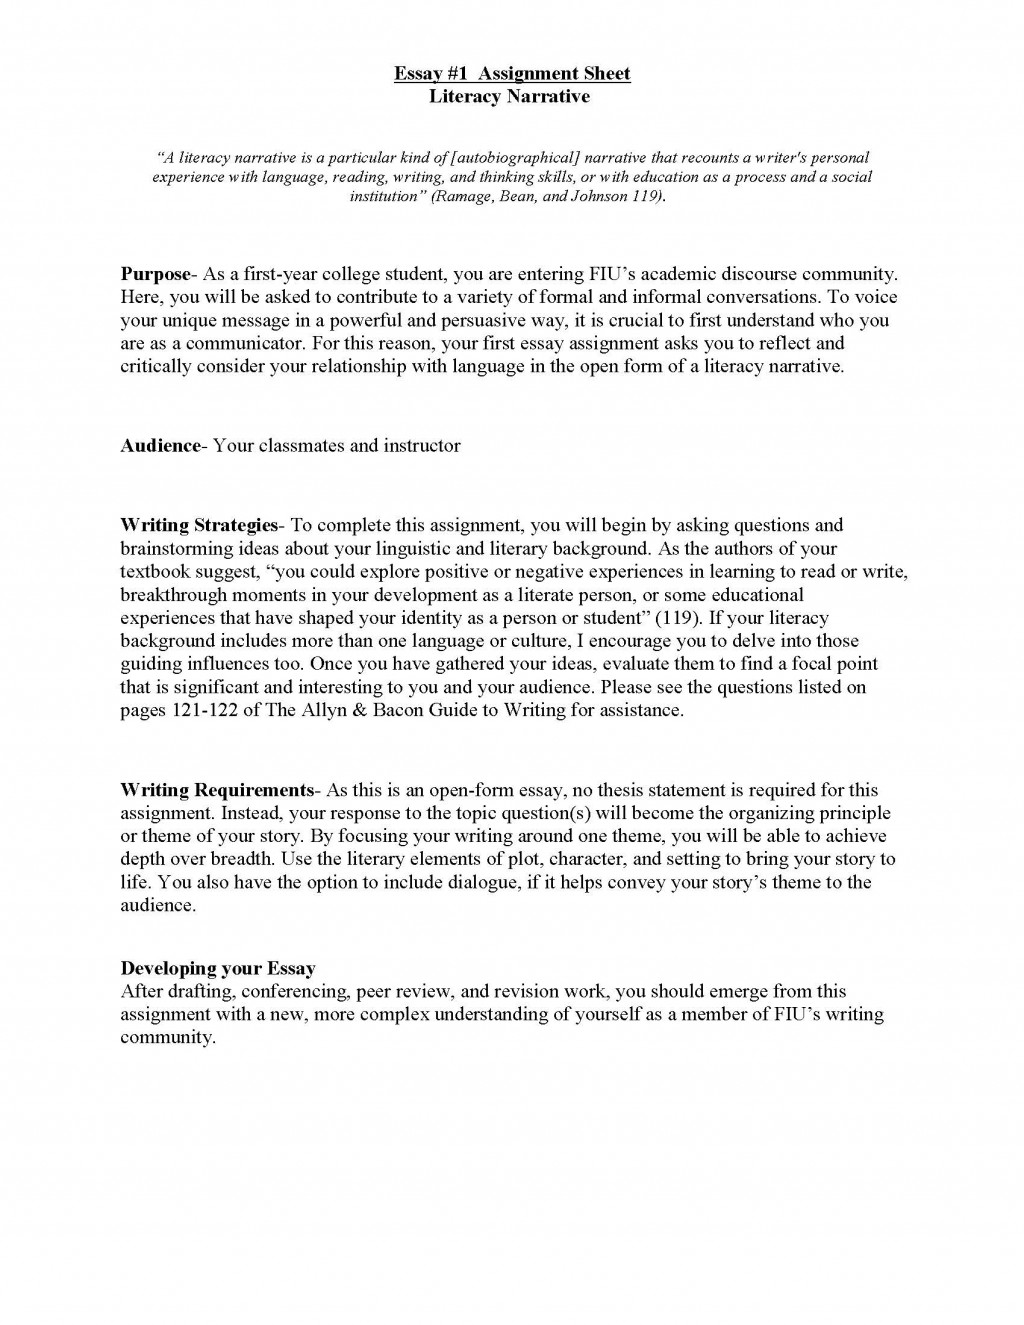 020 Essay Example Literacy Narrative Unit Assignment Spring 2012 Page 1 Fascinating Define Definition Of Writing Personal Narrative/descriptive Large